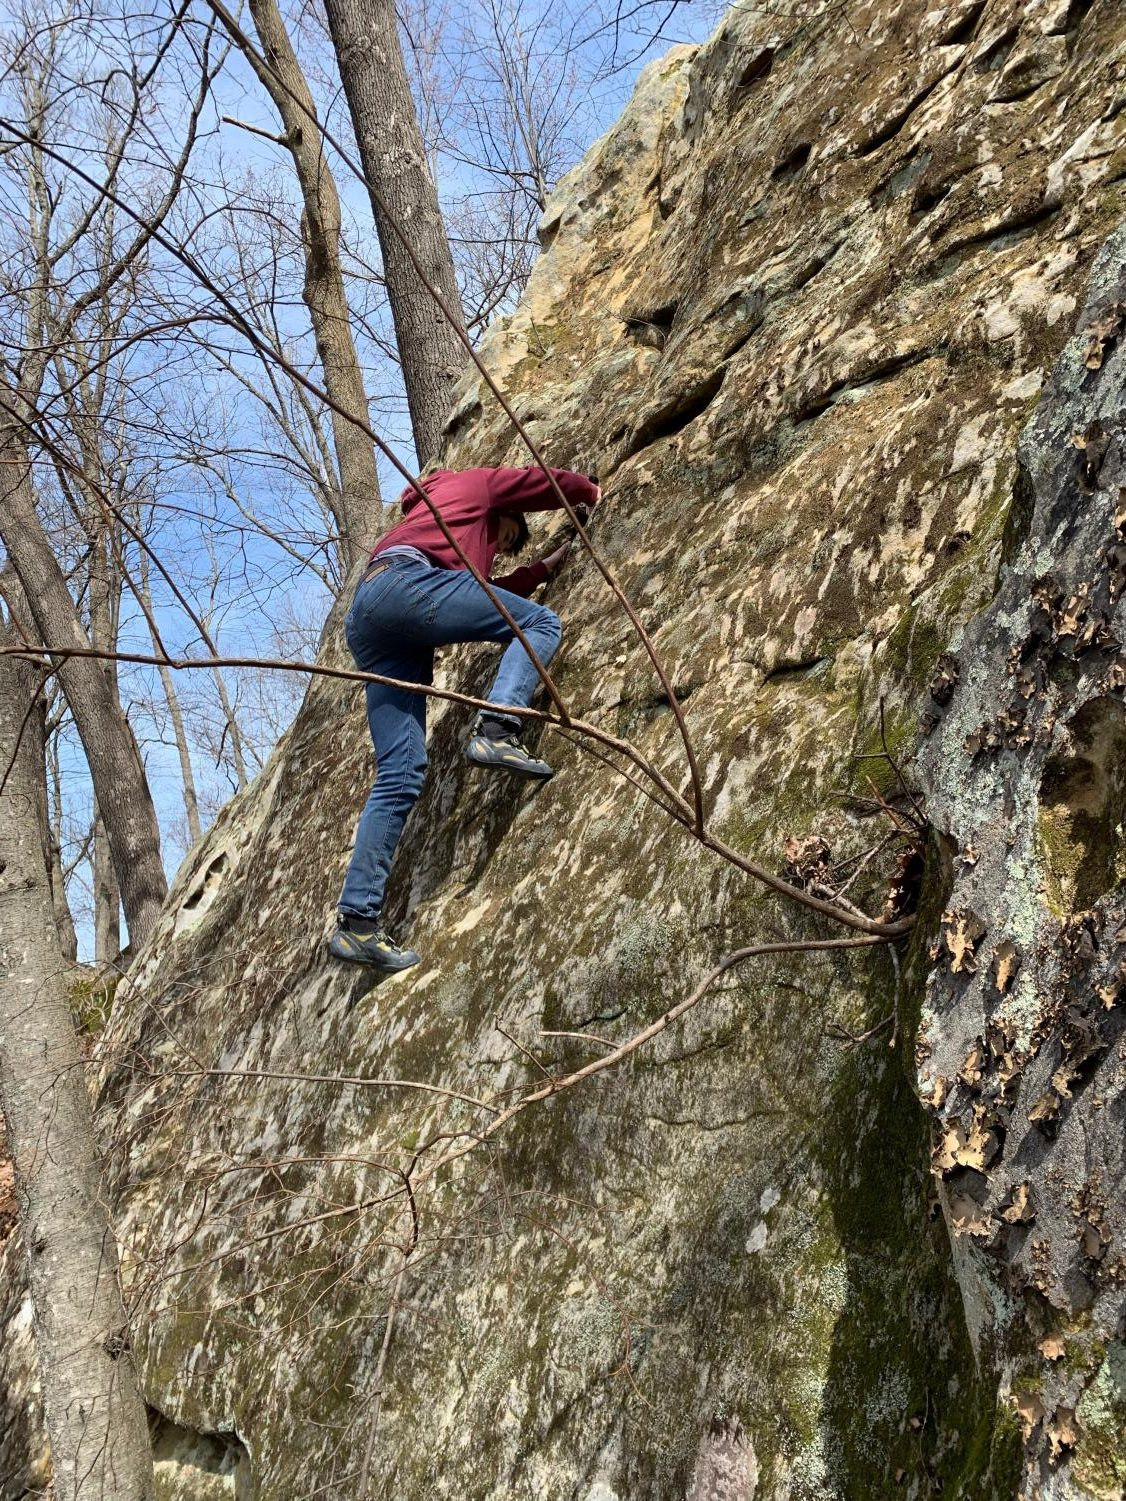 Once+on+location+we+warm+up+by+climbing+some+boulders+near+the+wall.+Boulders+are+rock+problems+that+are+generally+about+15+feet+tall.+Because+of+this+height+there+are+not+safety+ropes.+in+a+normal+climbing+gym+there+are+safety+mats+but+in+nature+climbers+spot+each+other.